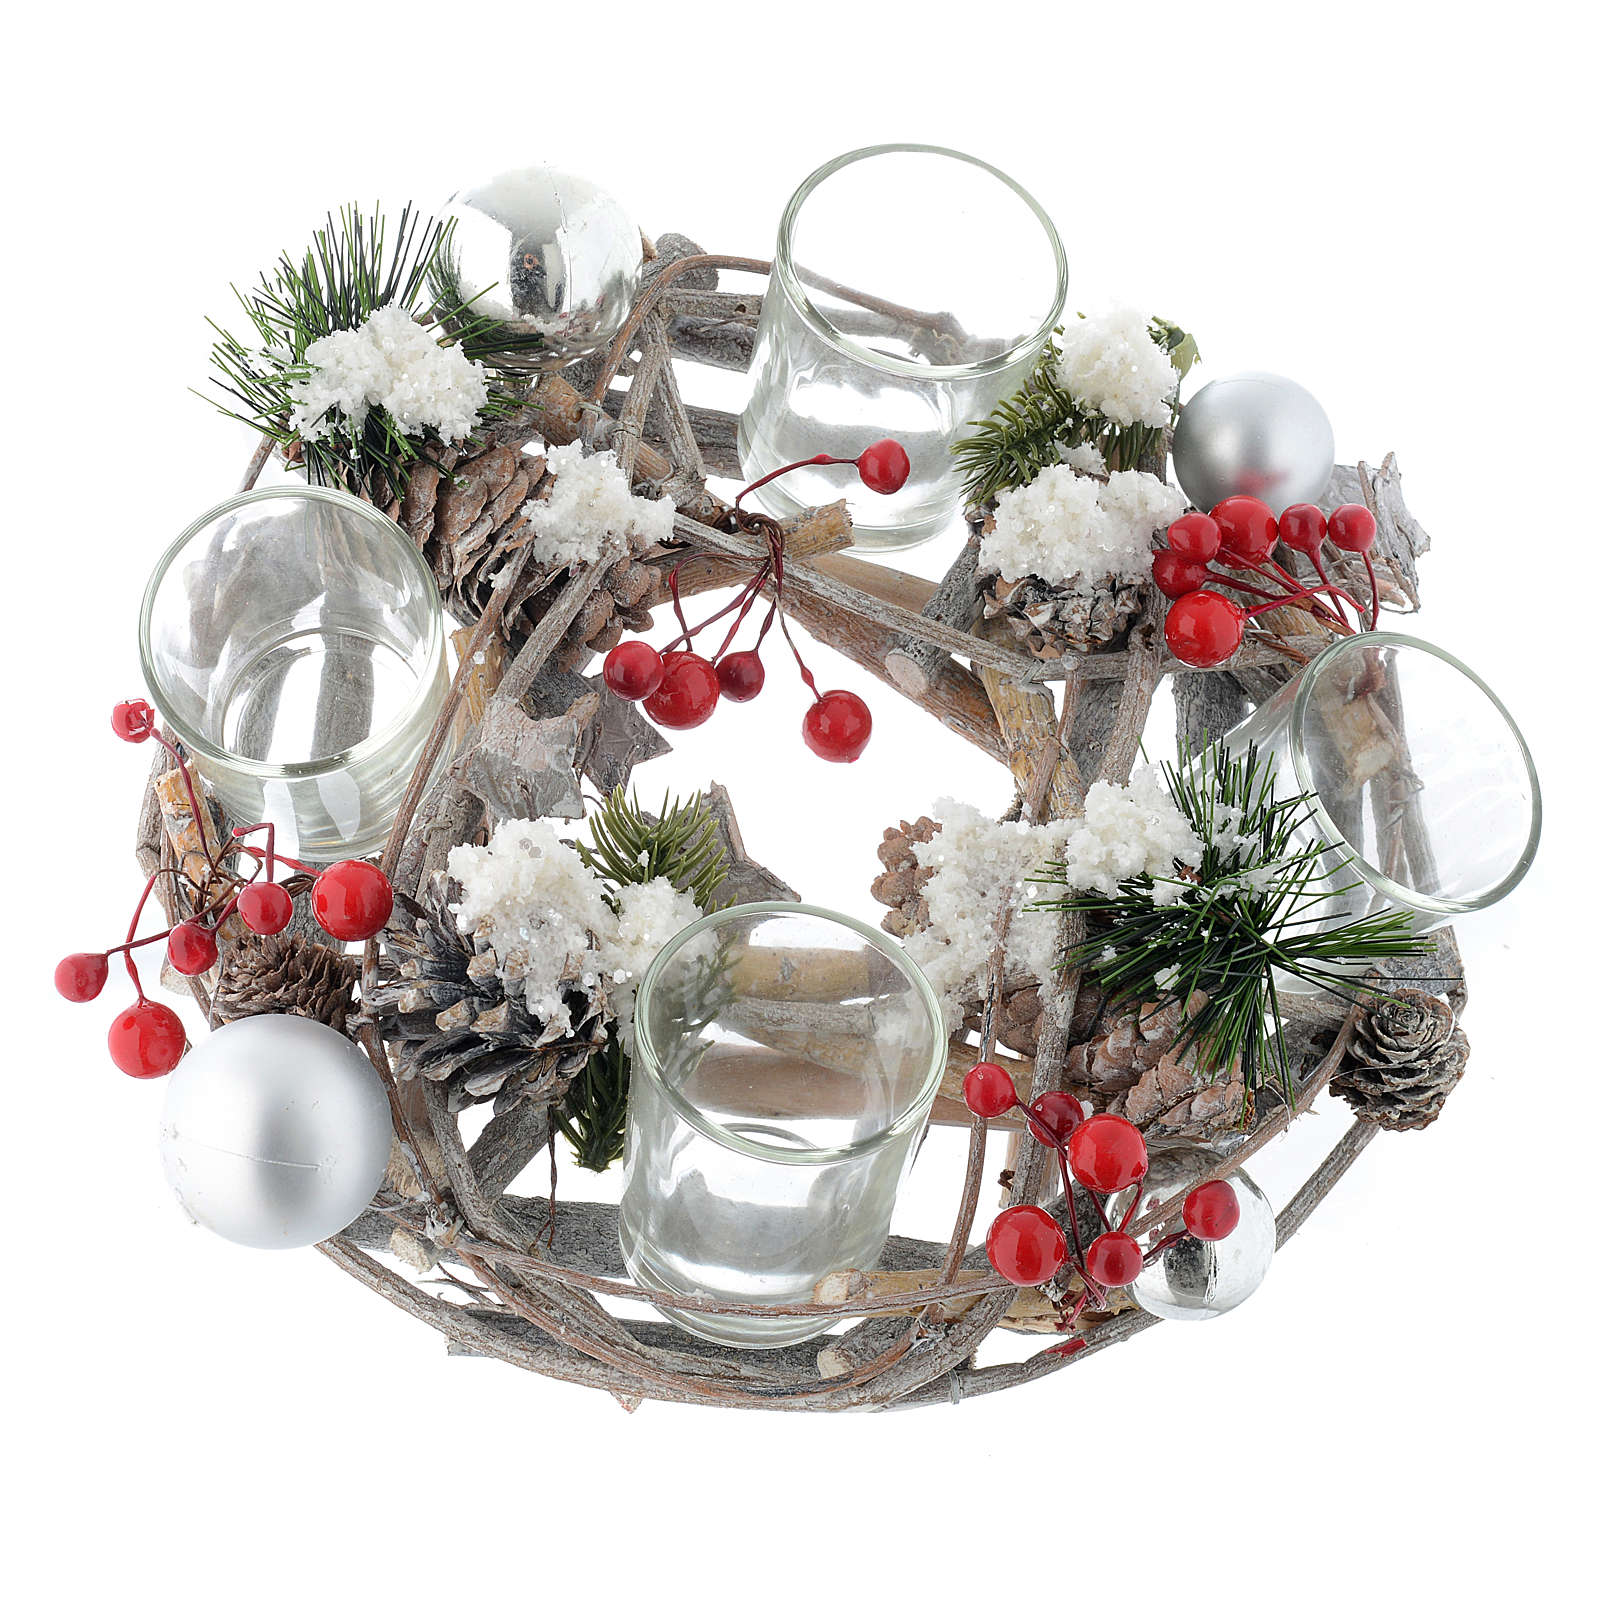 Christmas centrepiece with berries and glasses 3